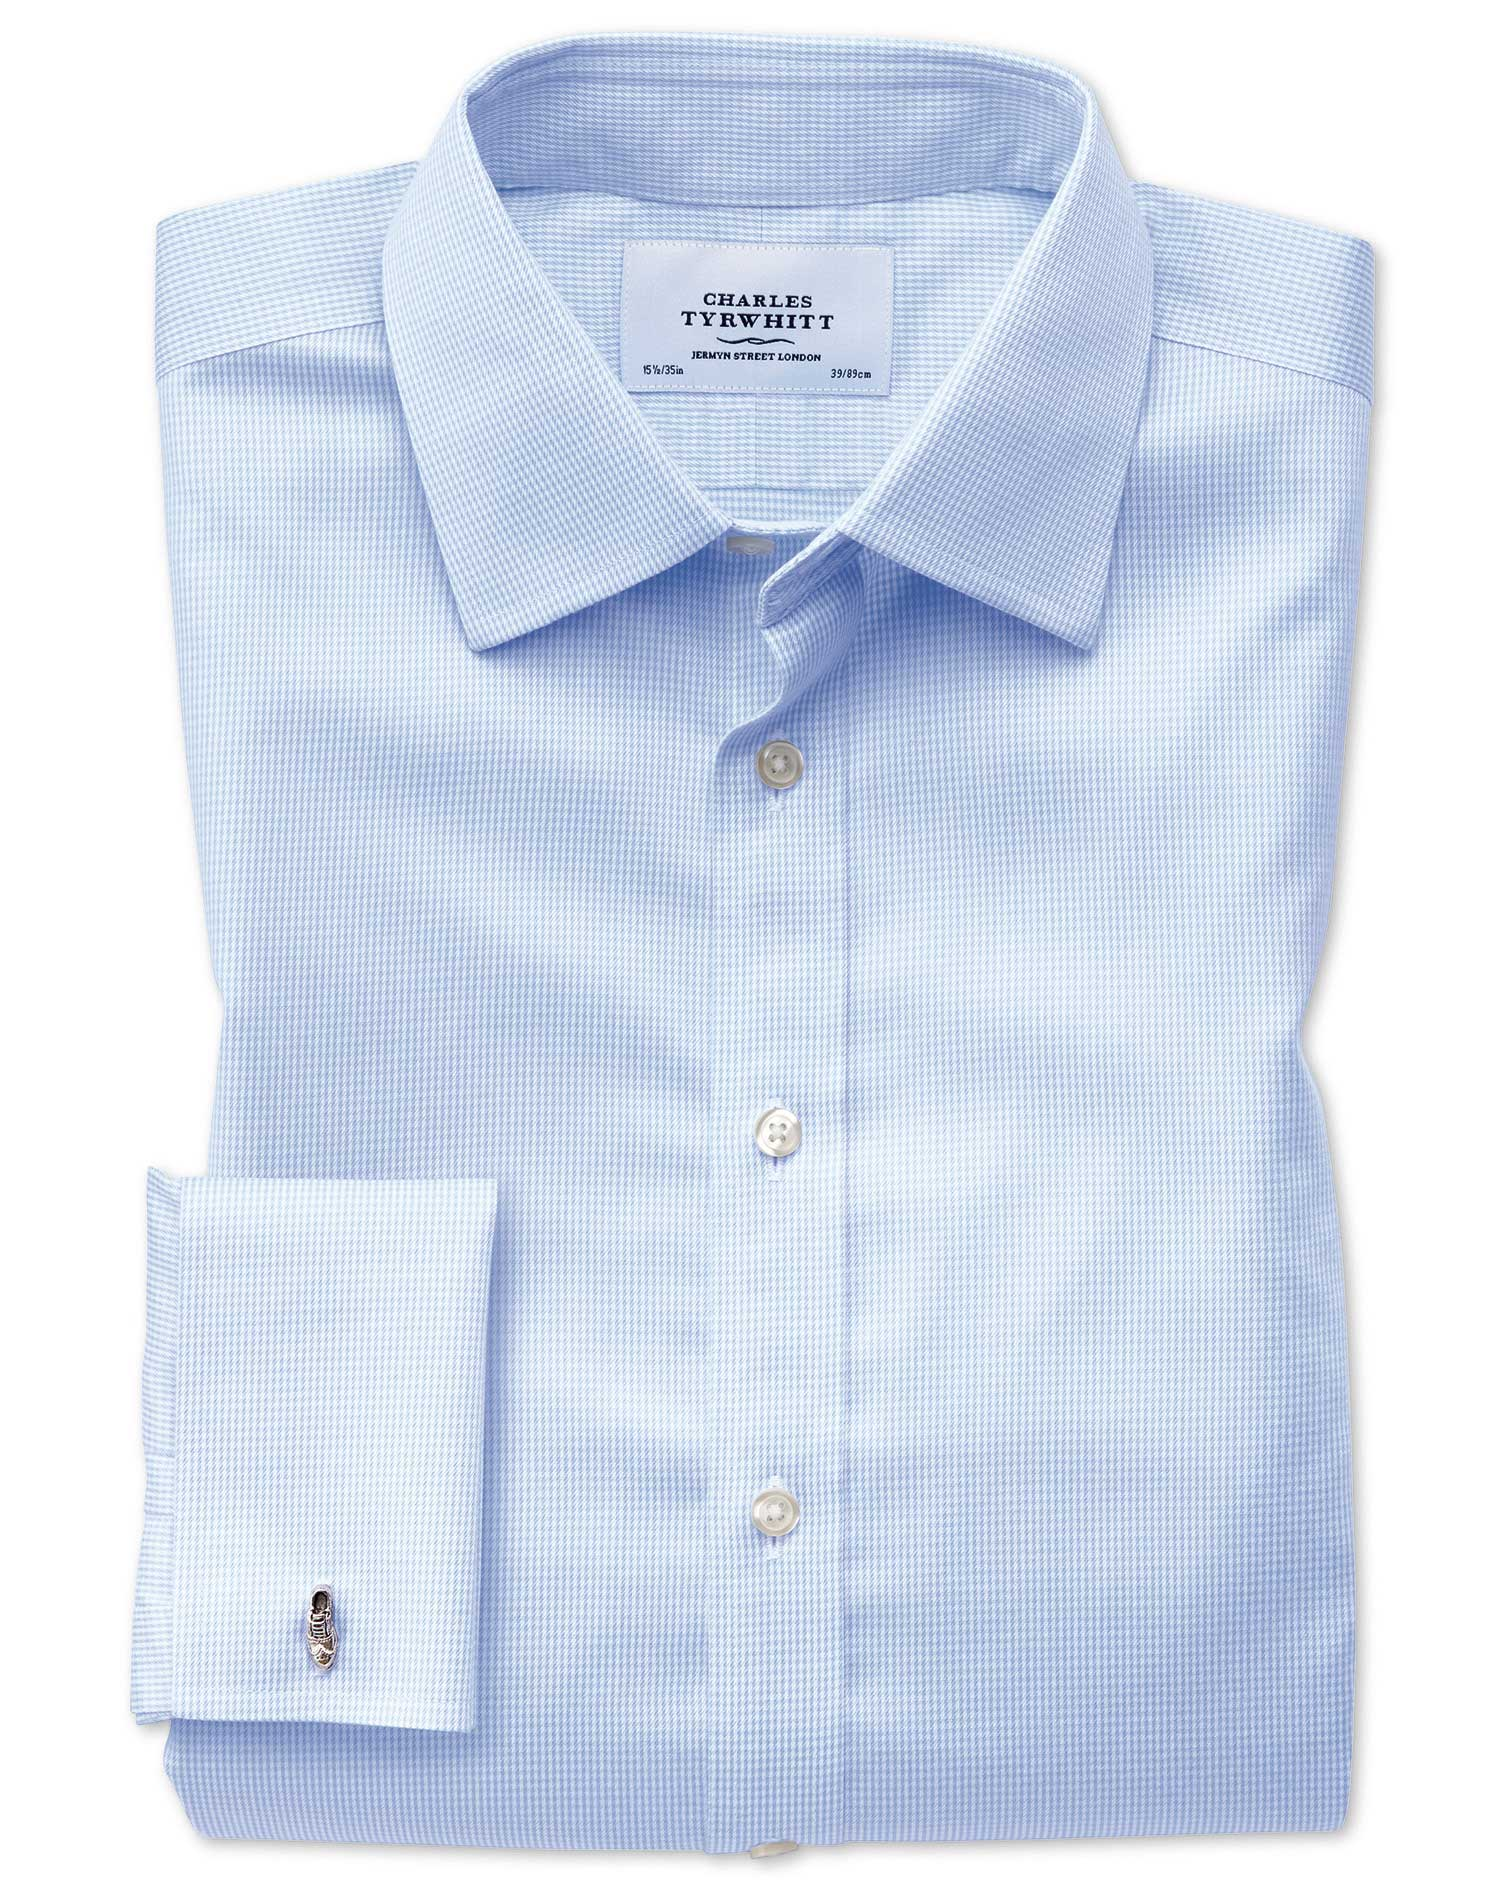 Extra Slim Fit Non-Iron Puppytooth Sky Blue Cotton Formal Shirt Double Cuff Size 15.5/33 by Charles